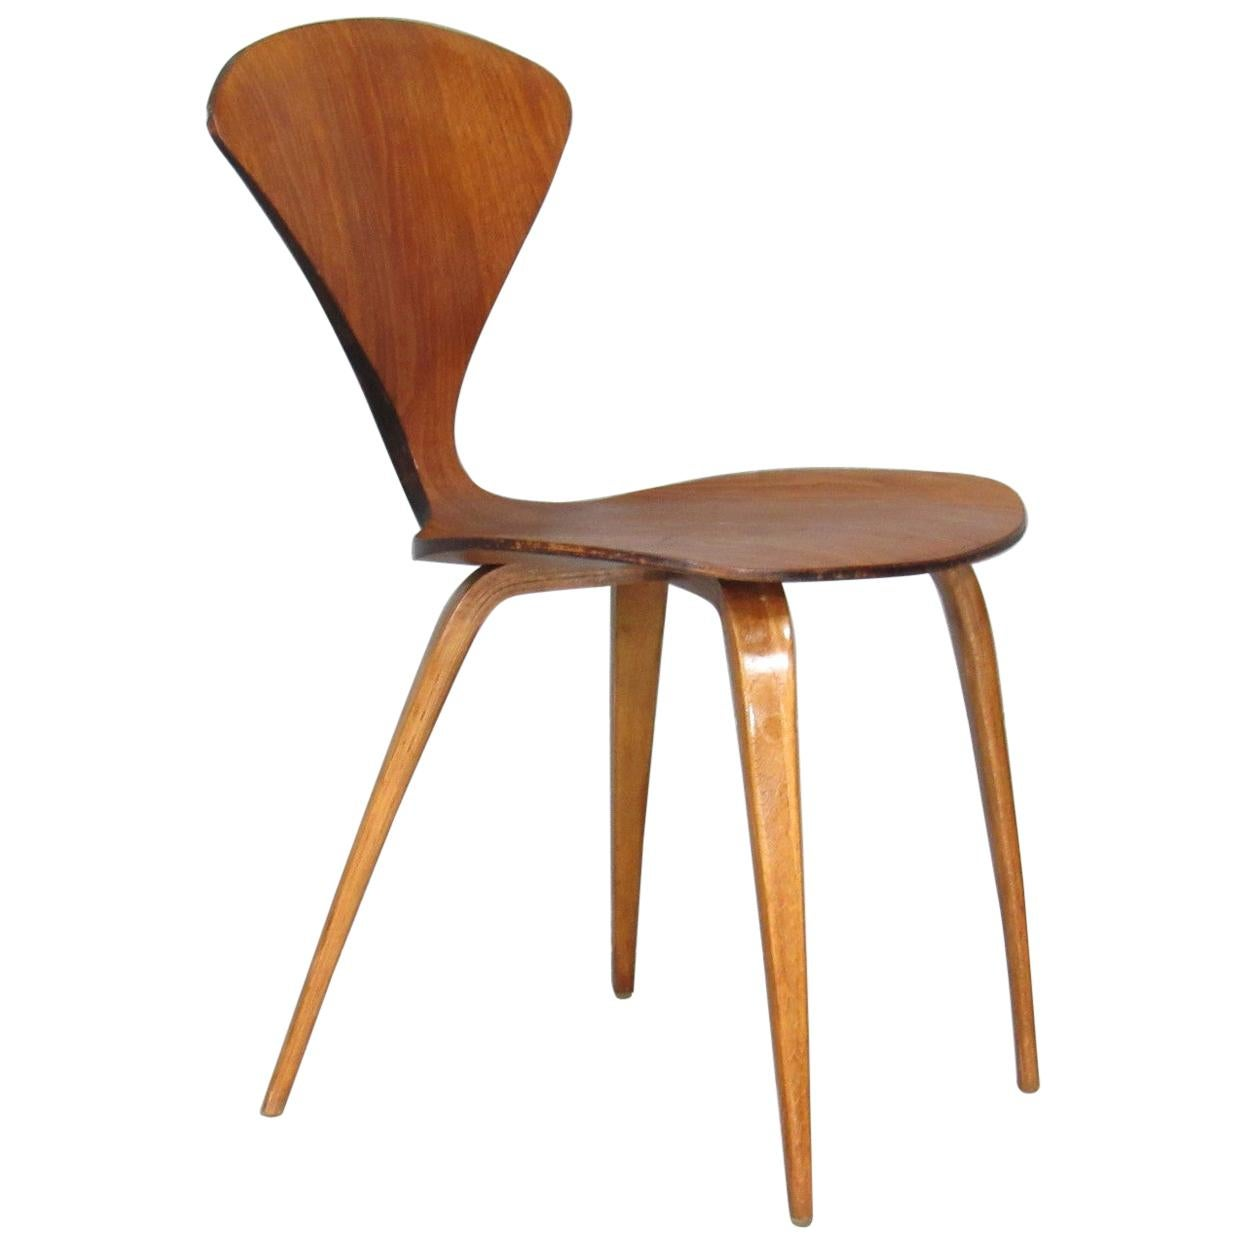 Early Mid-Century Modern Side Chair by Norman Cherner for Plycraft in Walnut